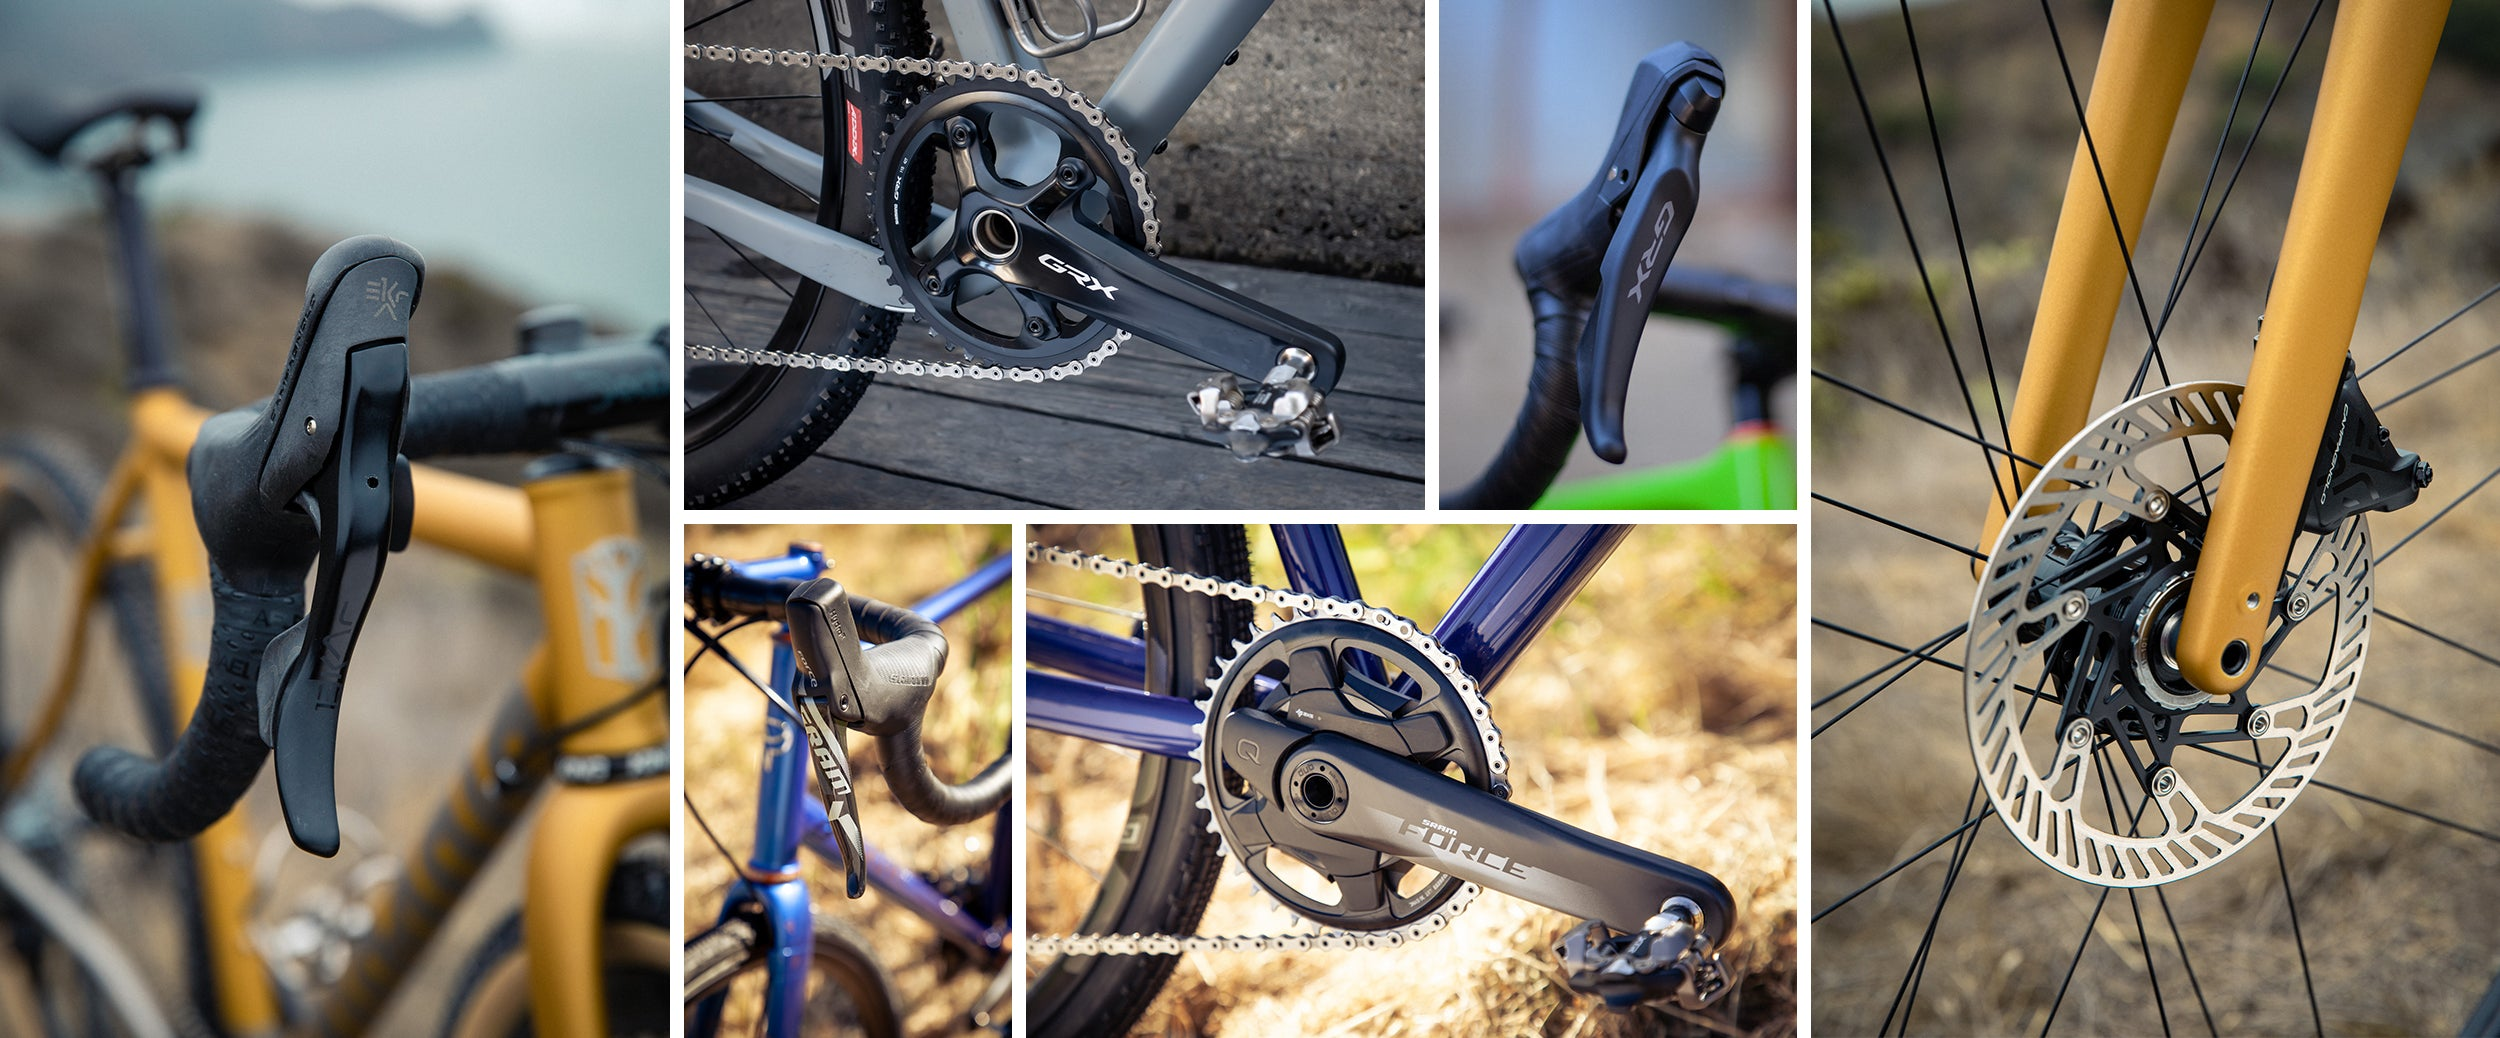 campagnolo ekar vs force and grx